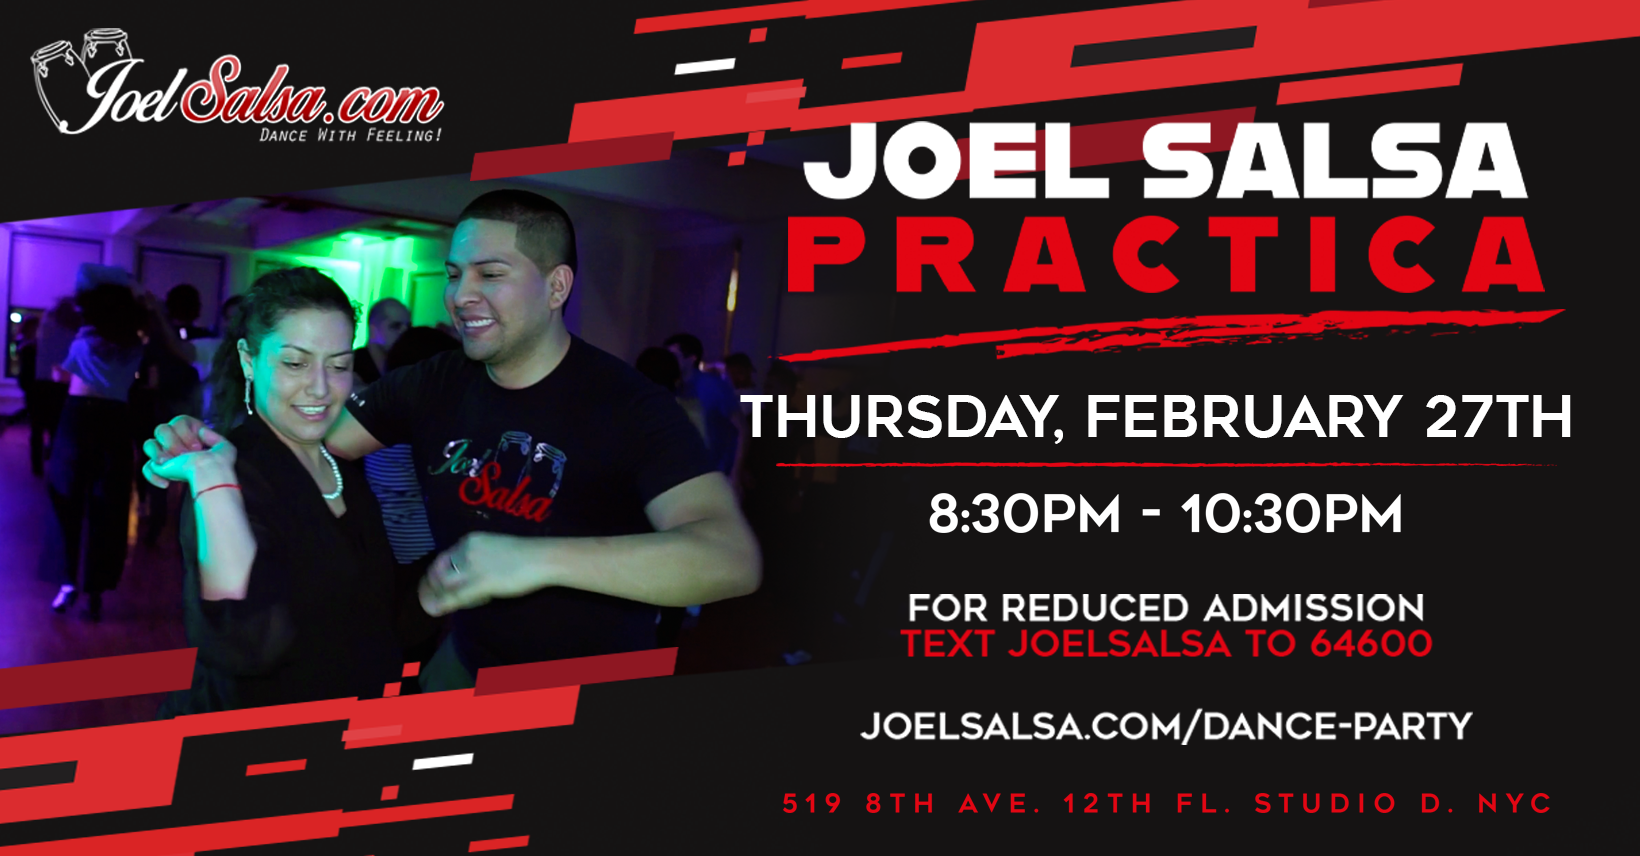 Joel Salsa Practica Dance Party on Thursday February 27th 2020